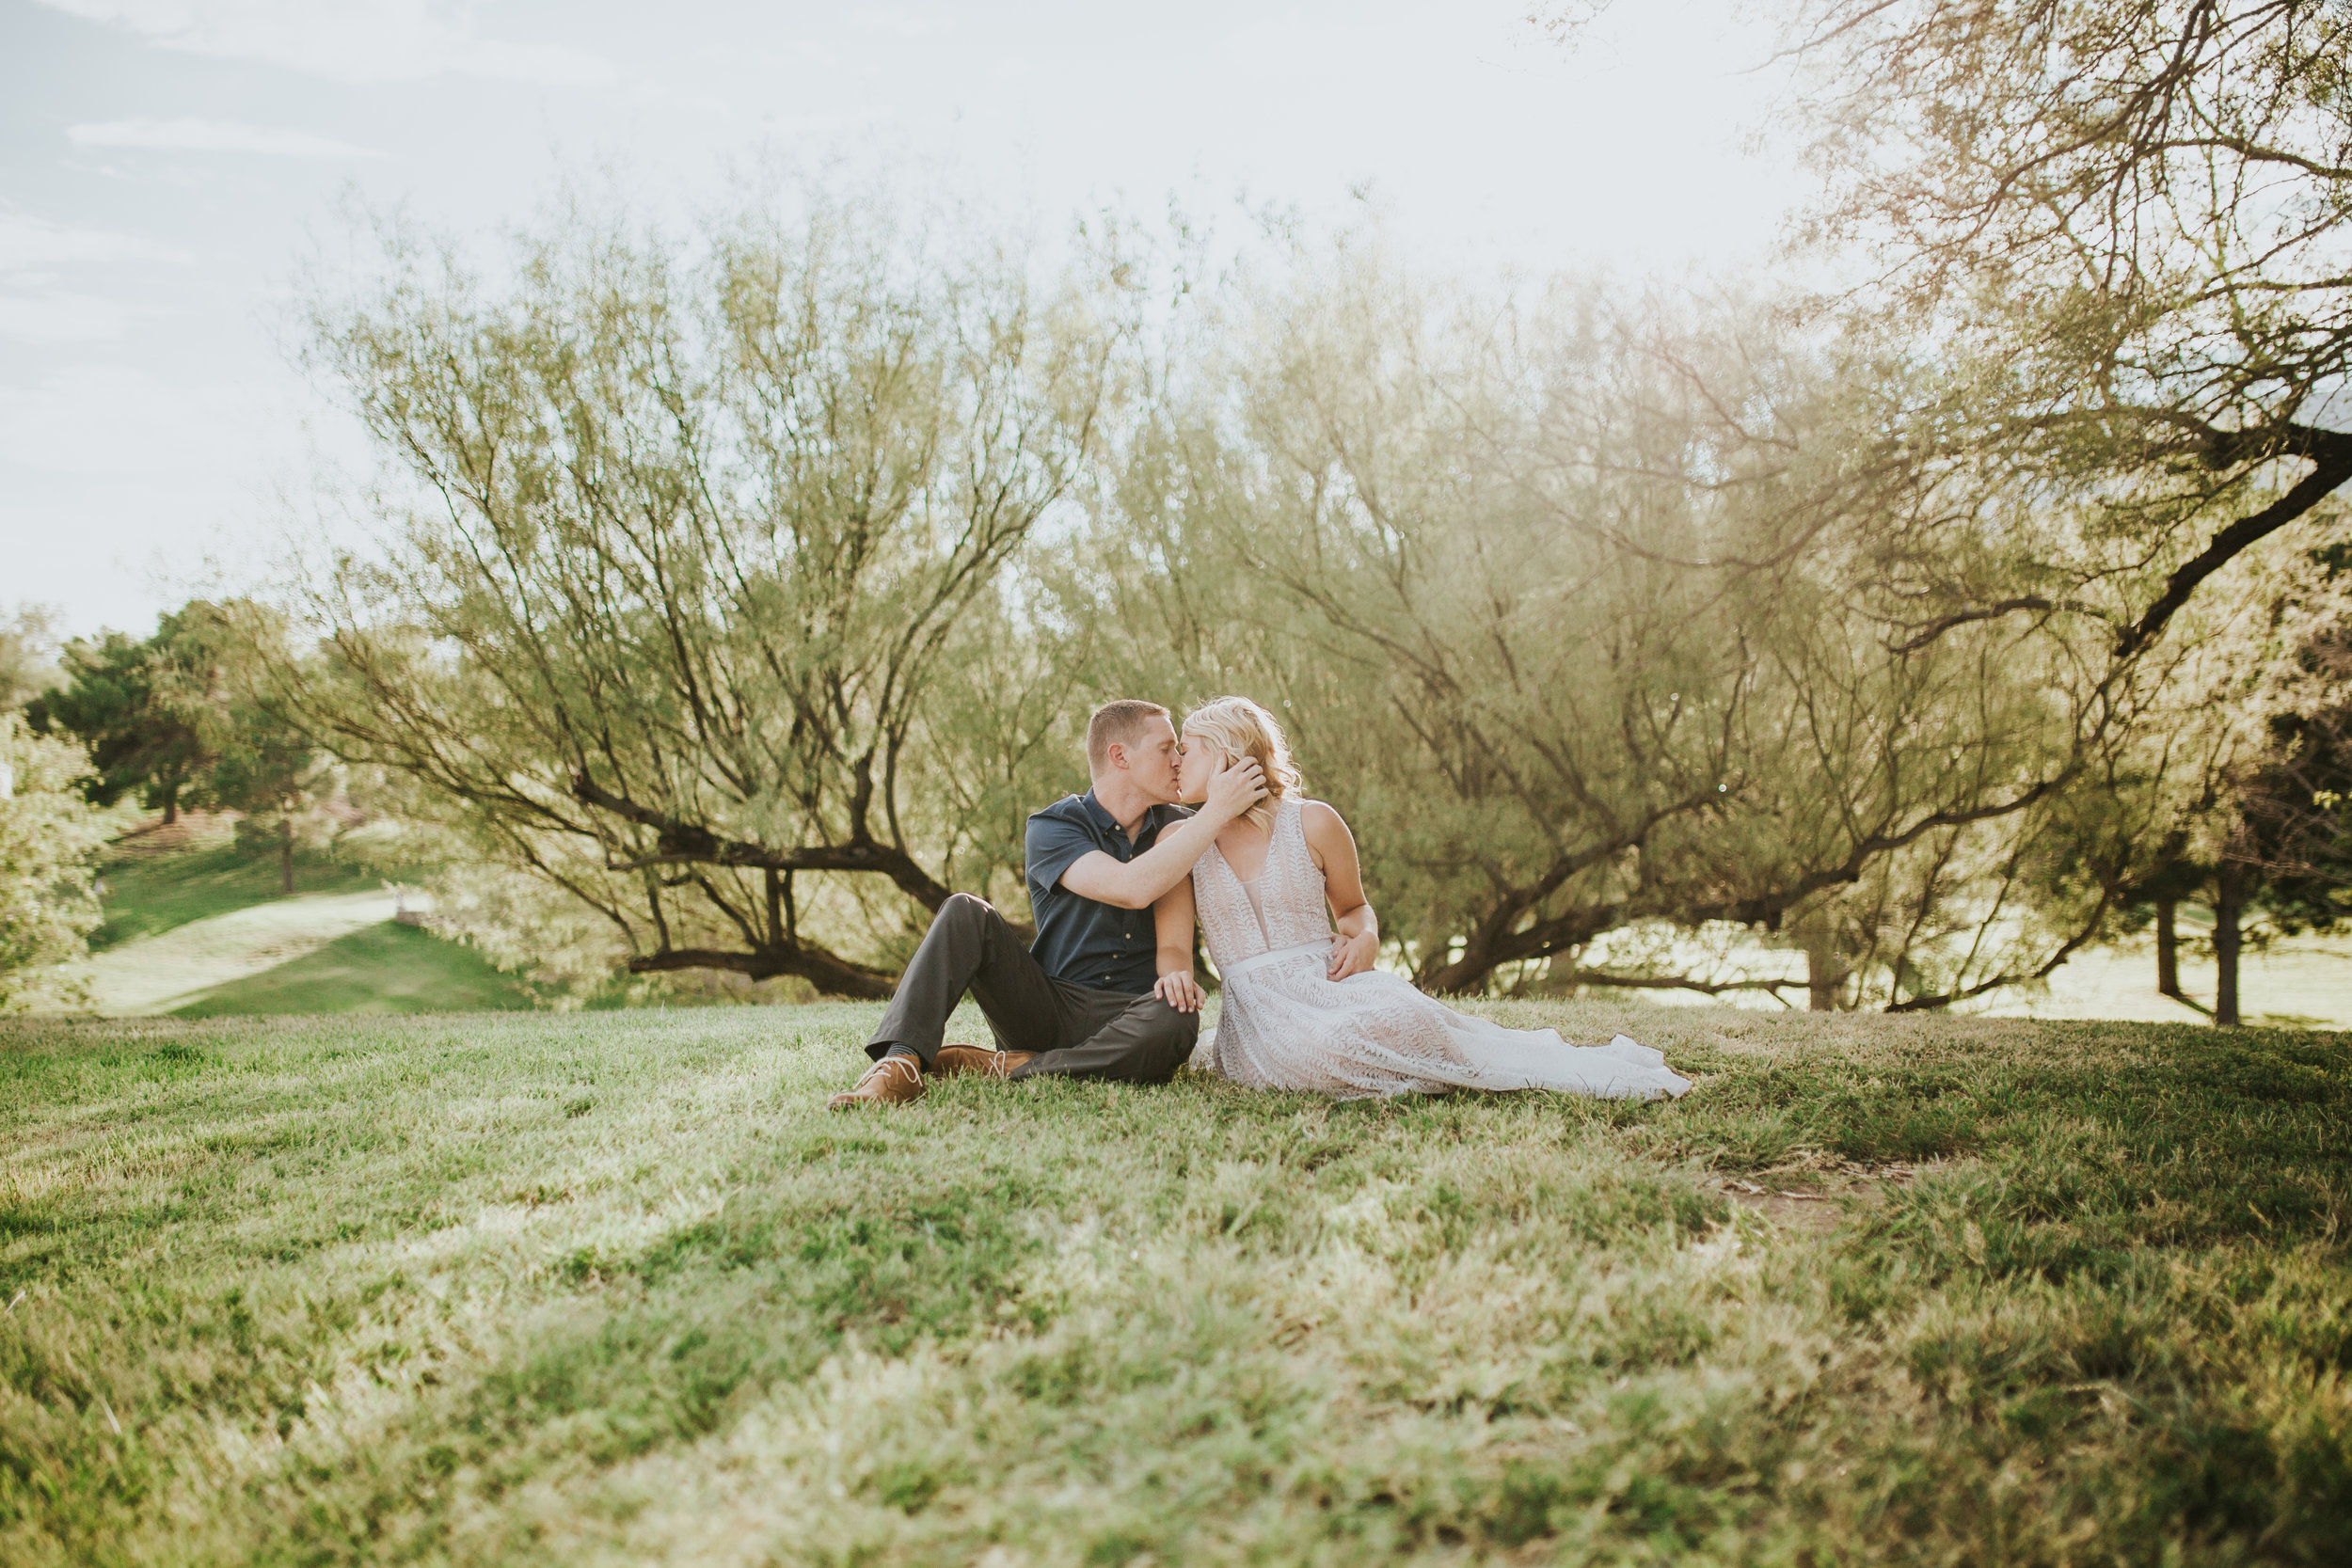 el-paso-memorial-park-engagement-sparrow-and-gold-photography-5